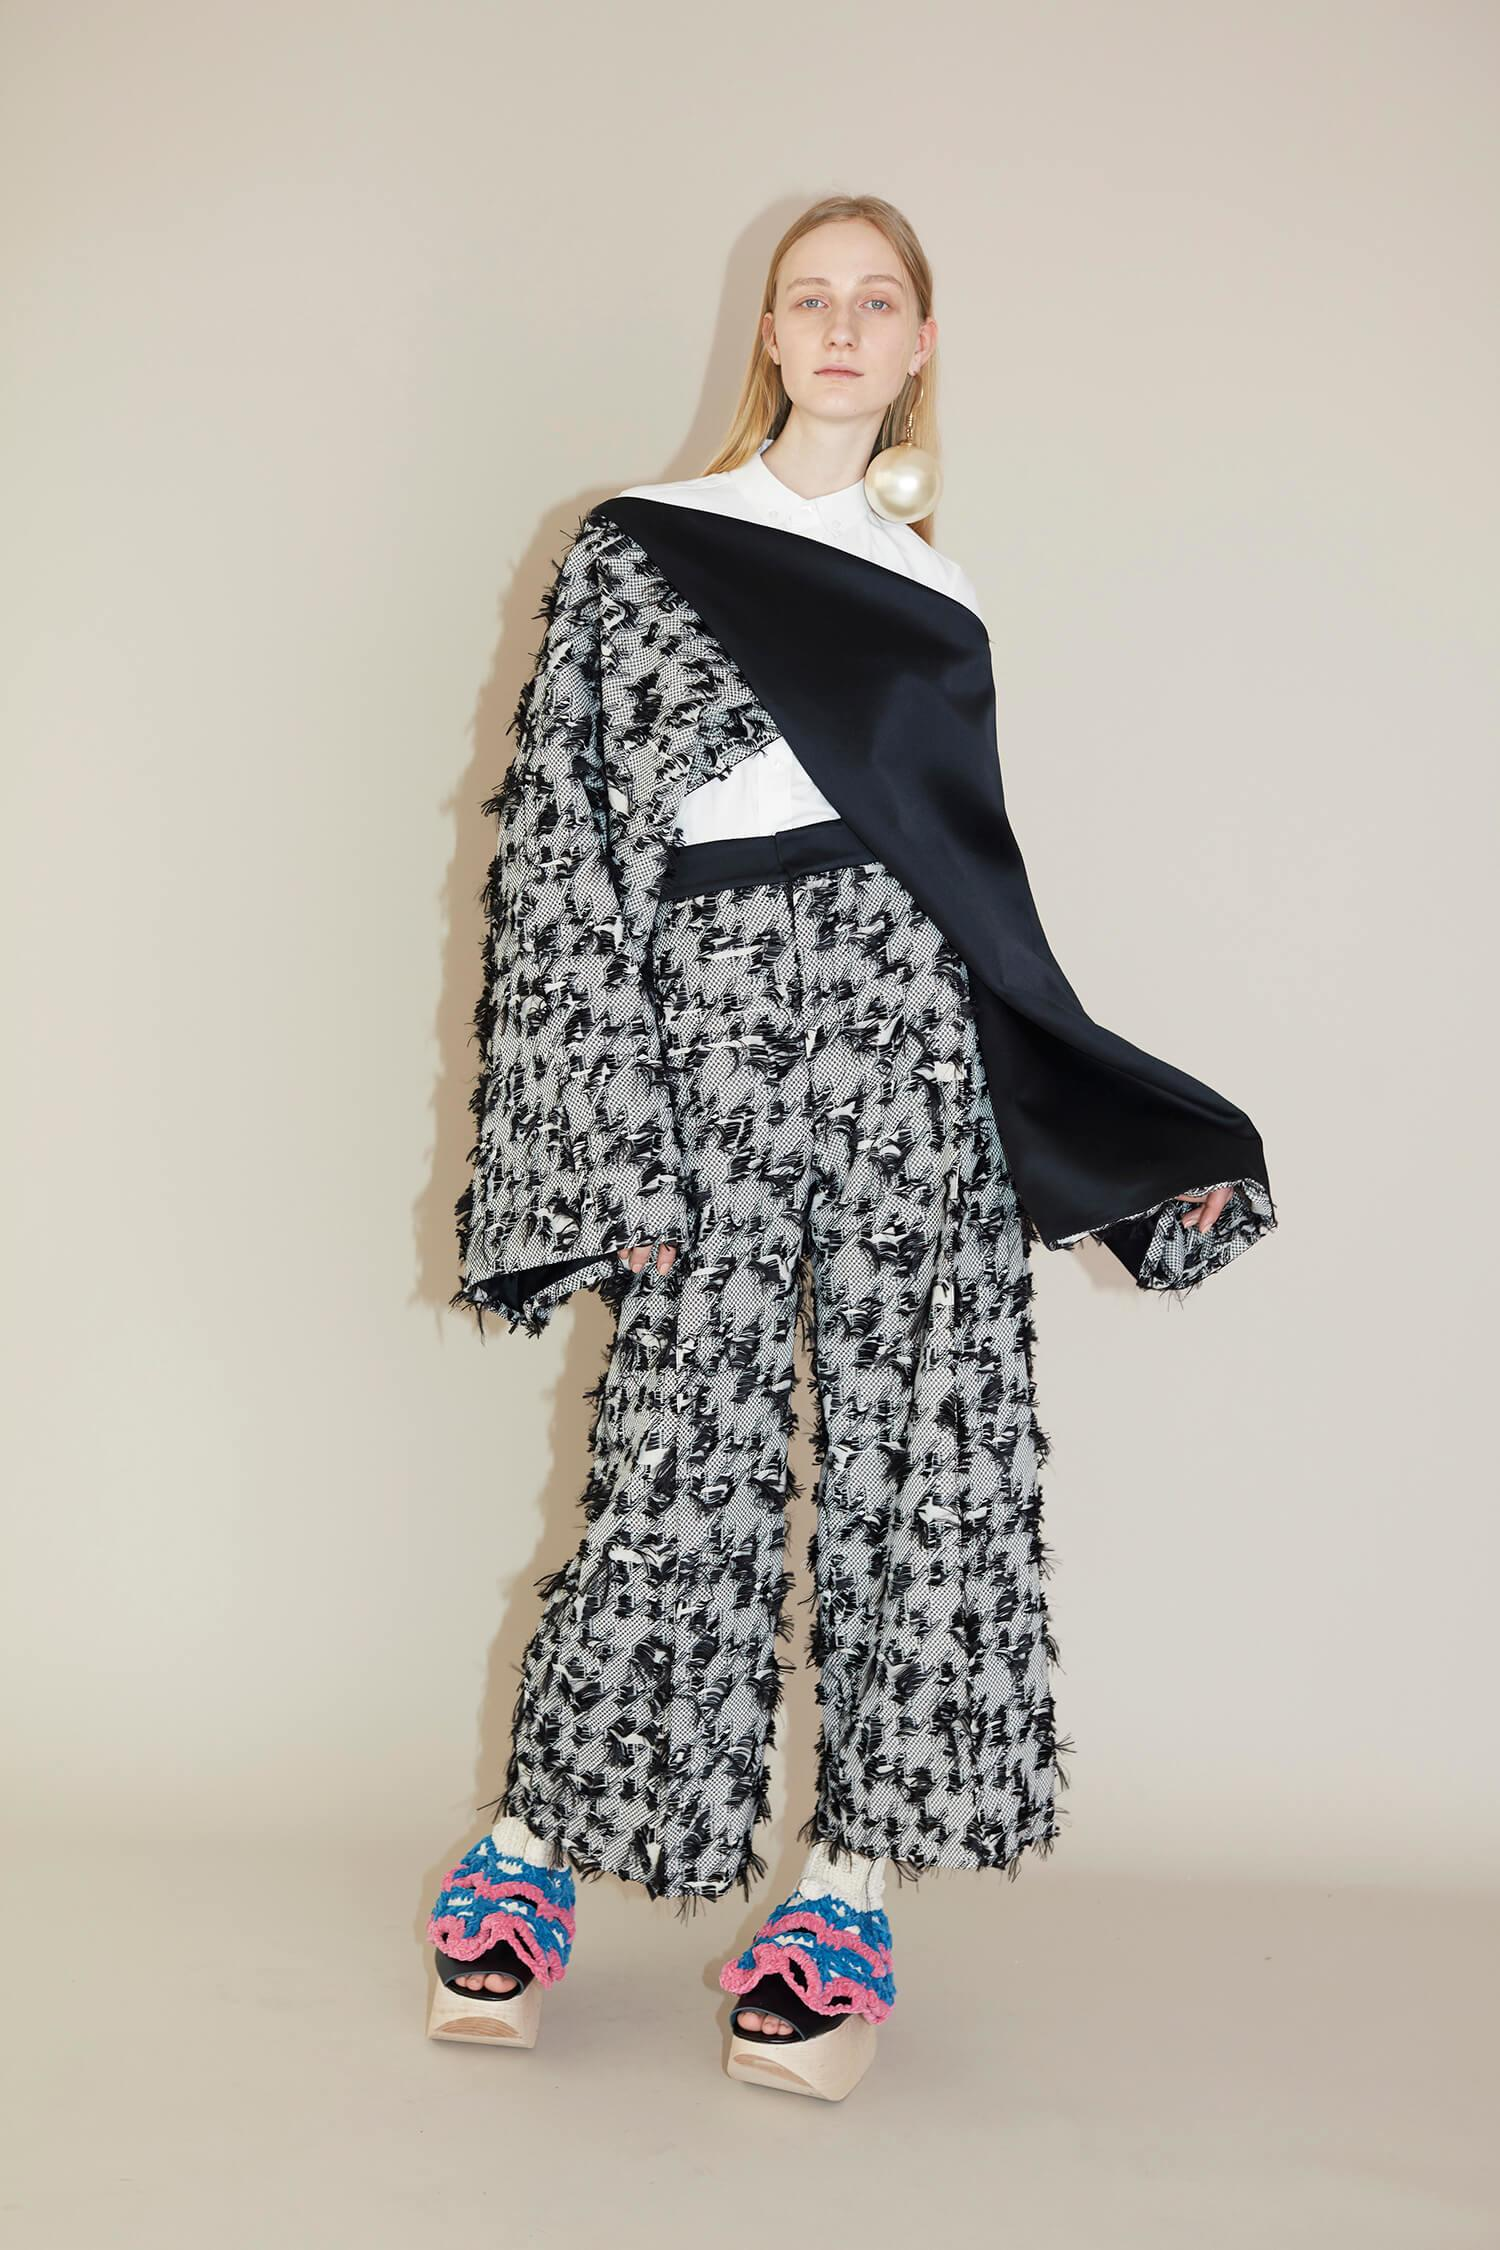 Look 2017 Autumn Winter Collection Beautiful People